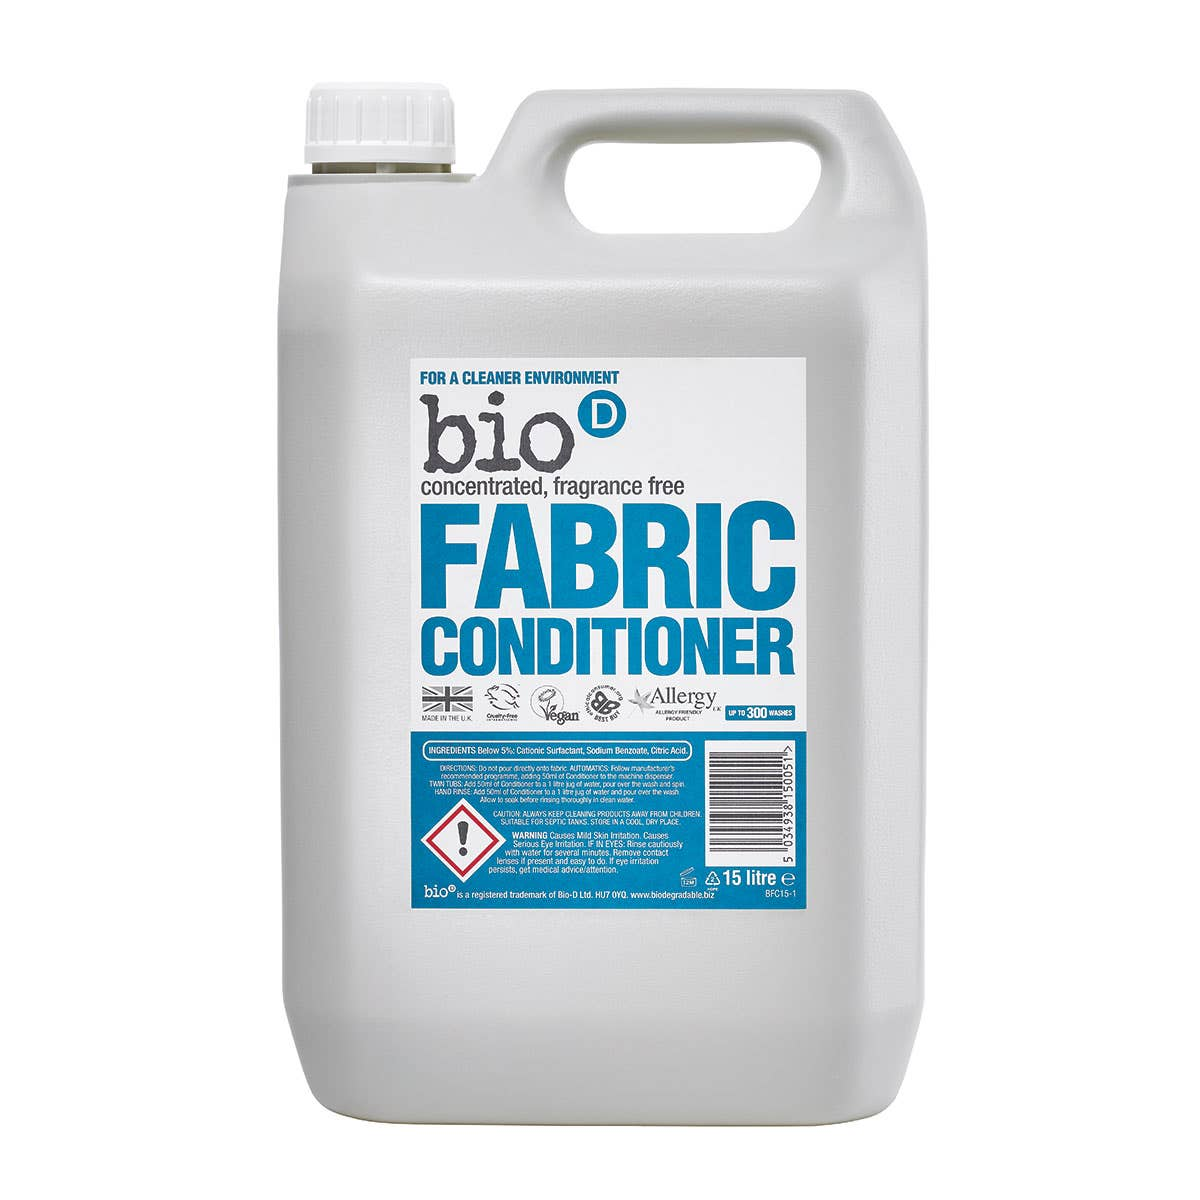 Bio-D Fragrance-Free and Hypoallergenic Fabric Conditioner (5 Litre)